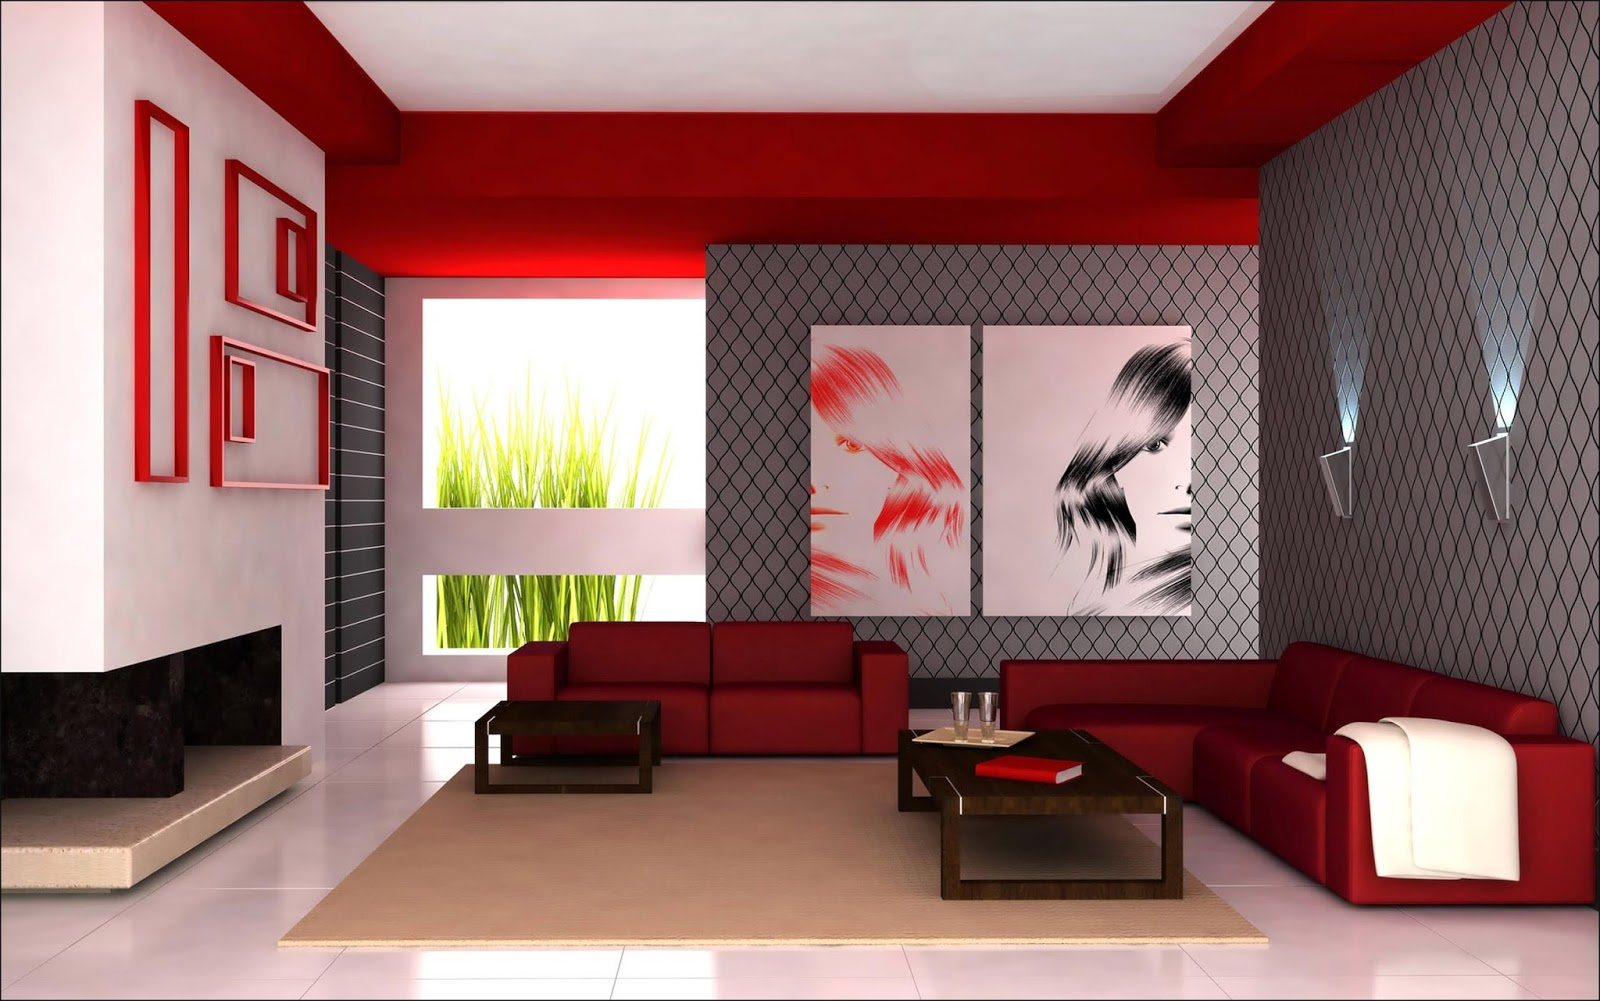 Red living room design ideas 4 homes bedroom design New in Home Decorating Ideas